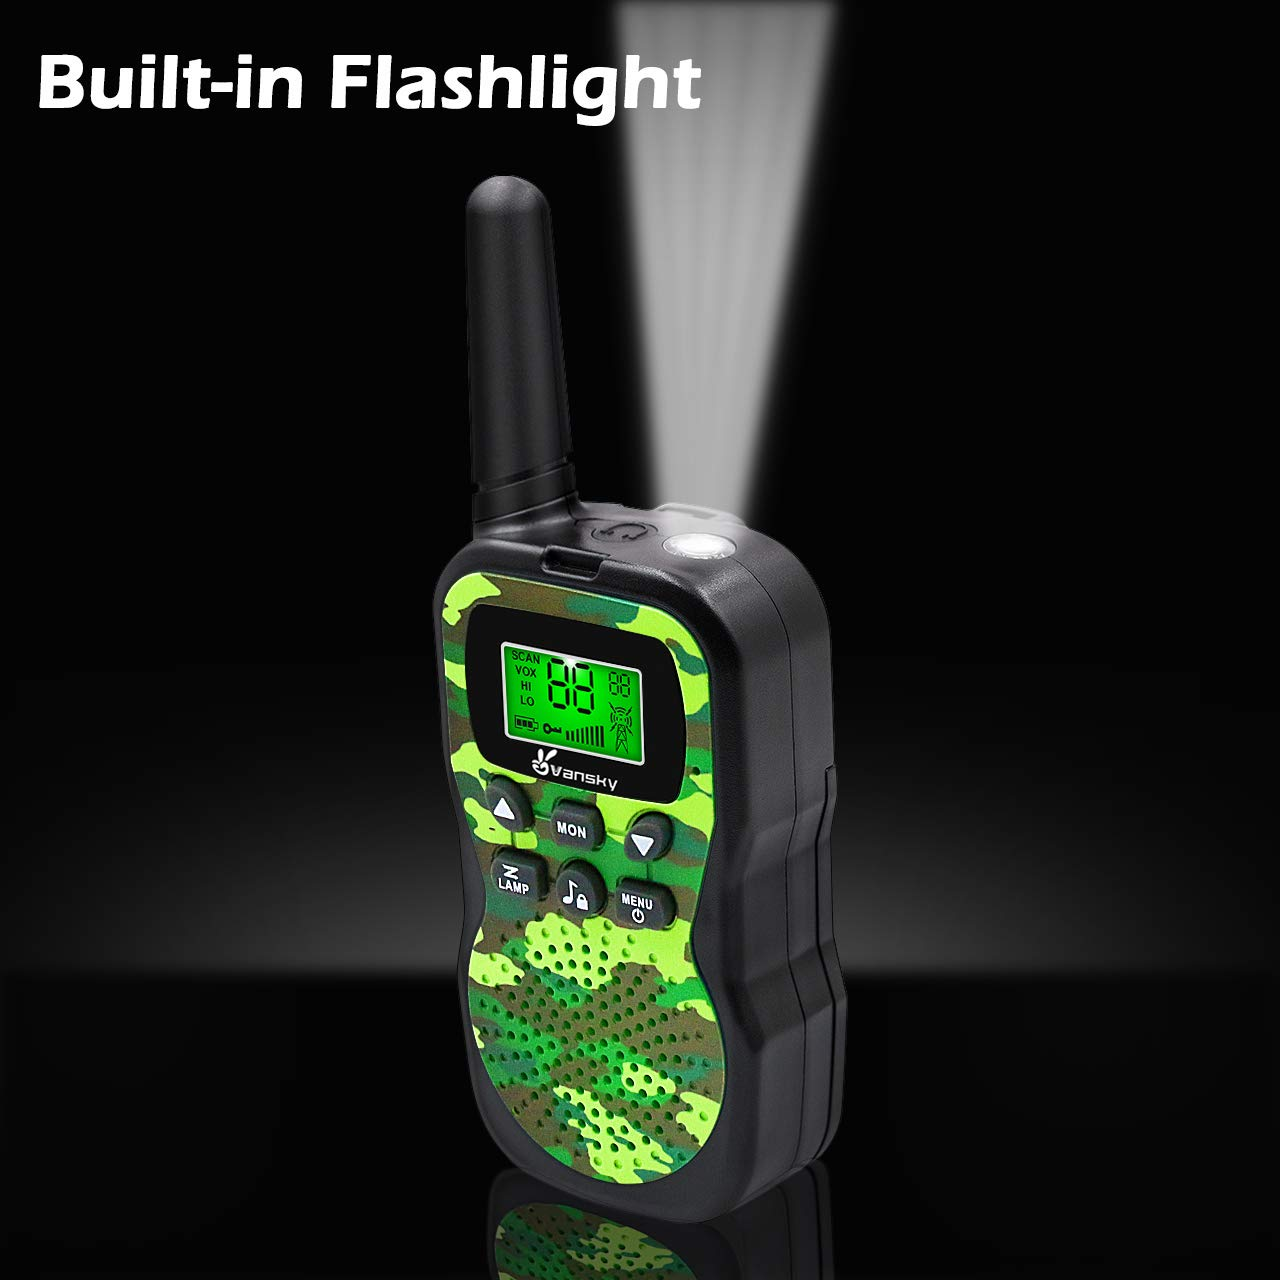 Vansky Walkie Talkies for Kids, Kids Toys 4 5 6 7 8 Age Boy Girl Long Range 22 Channel Built-in Flashlight 2 Way Radio Best Gifts Games, Outdoor Adventure, Camping, Hiking (Camo Green) by Vansky (Image #6)